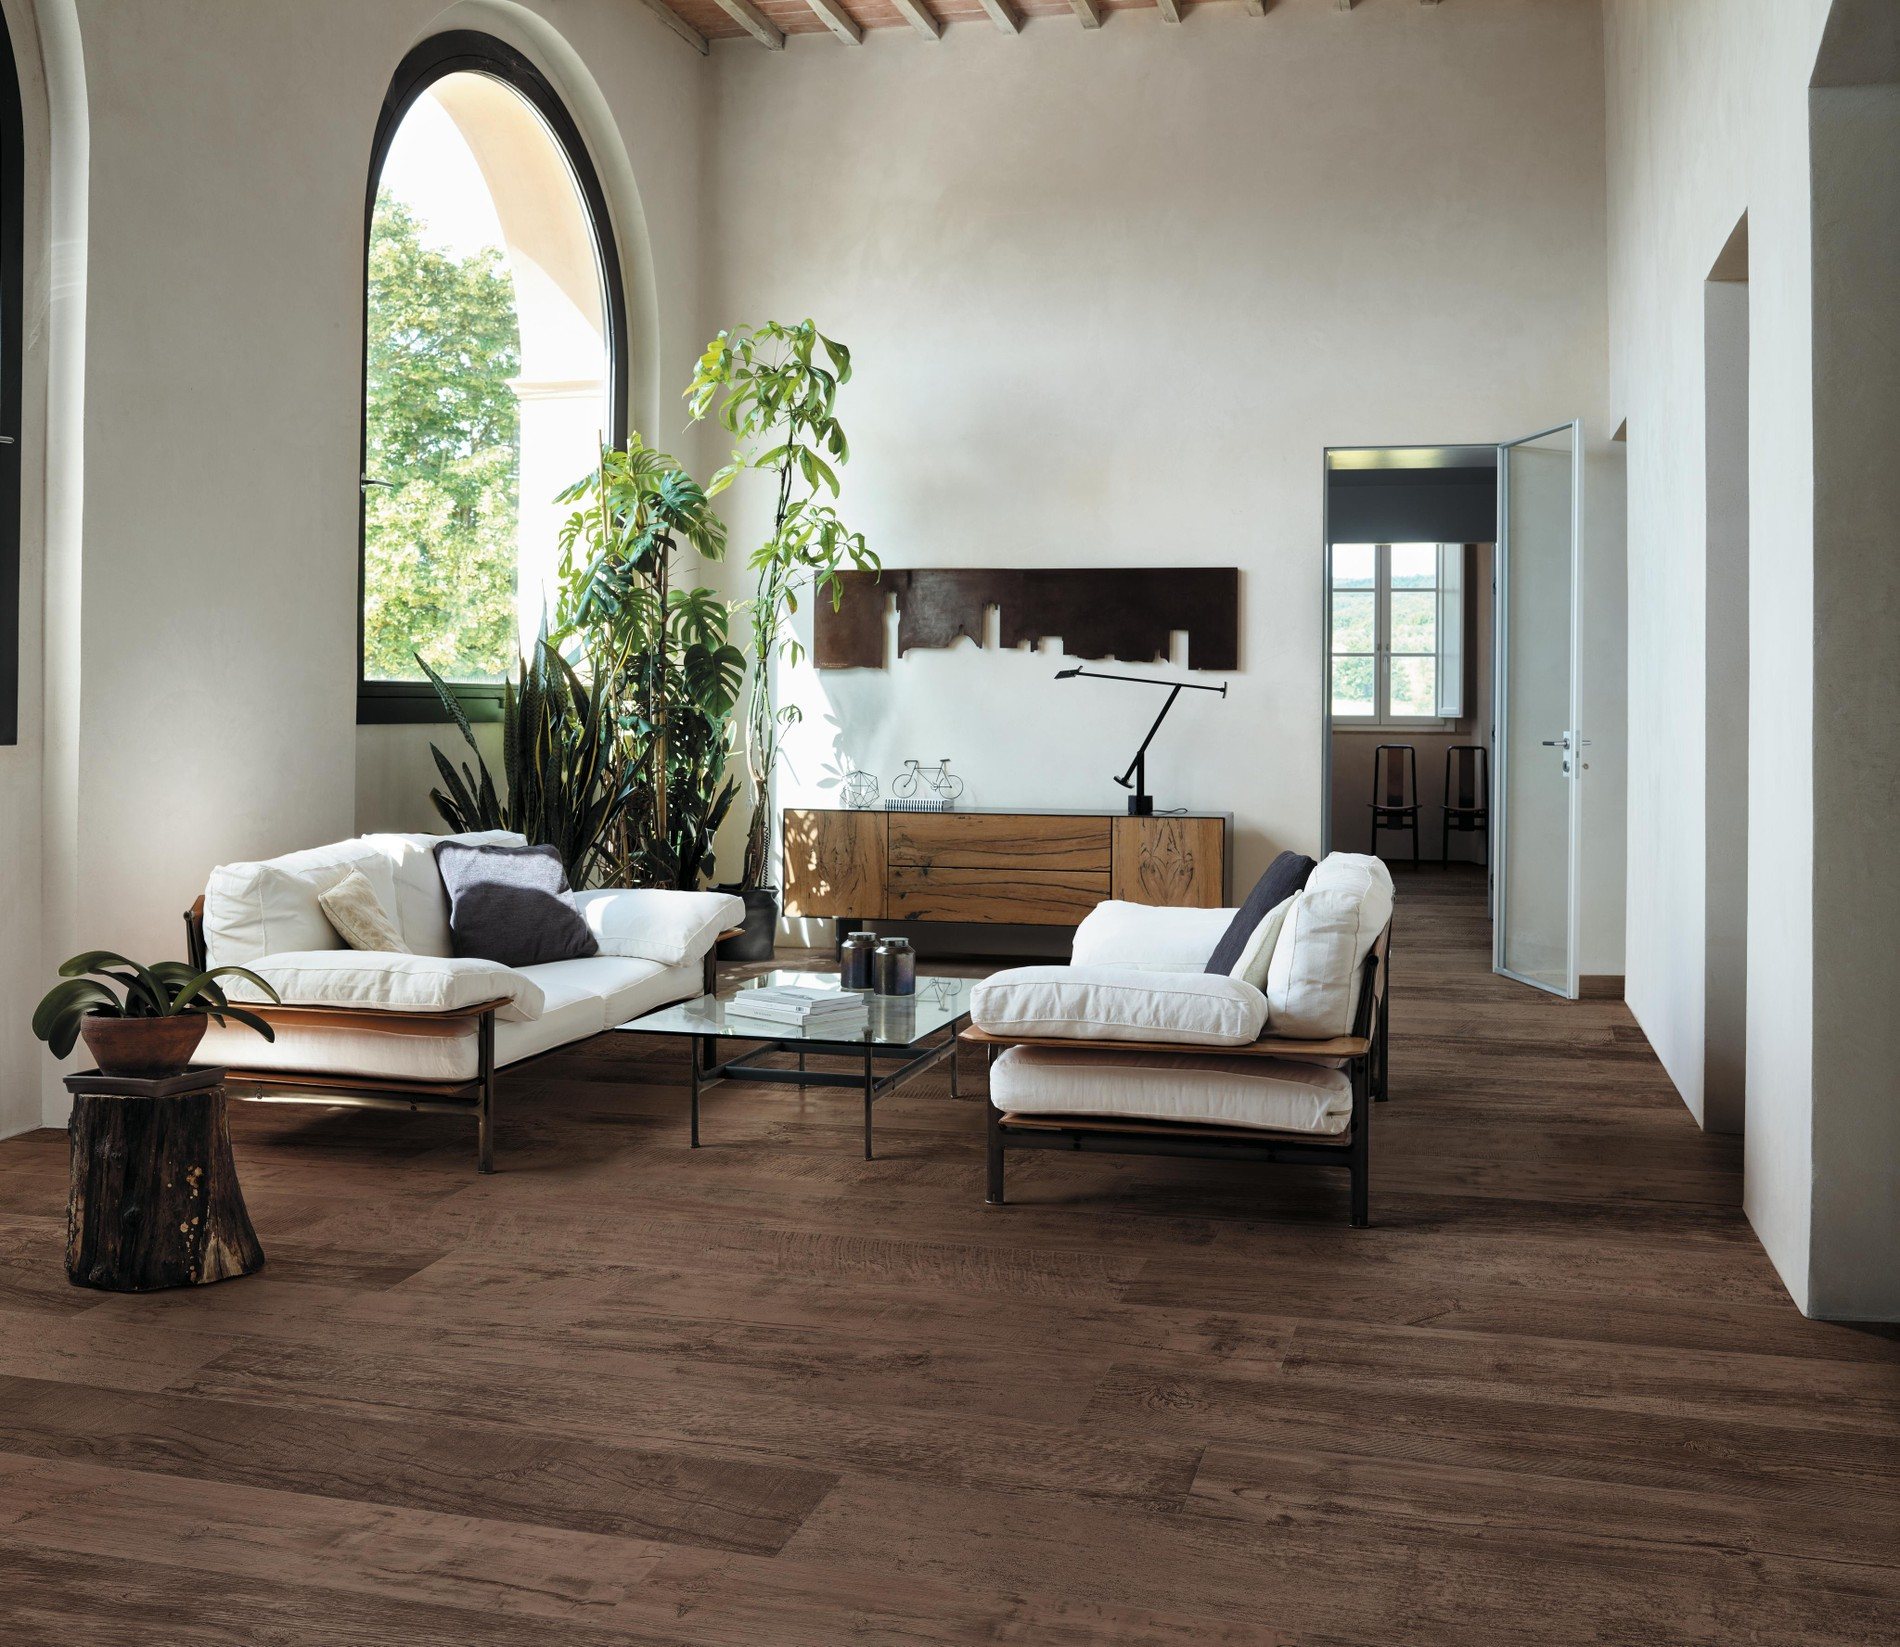 Wood-look porcelain tiles